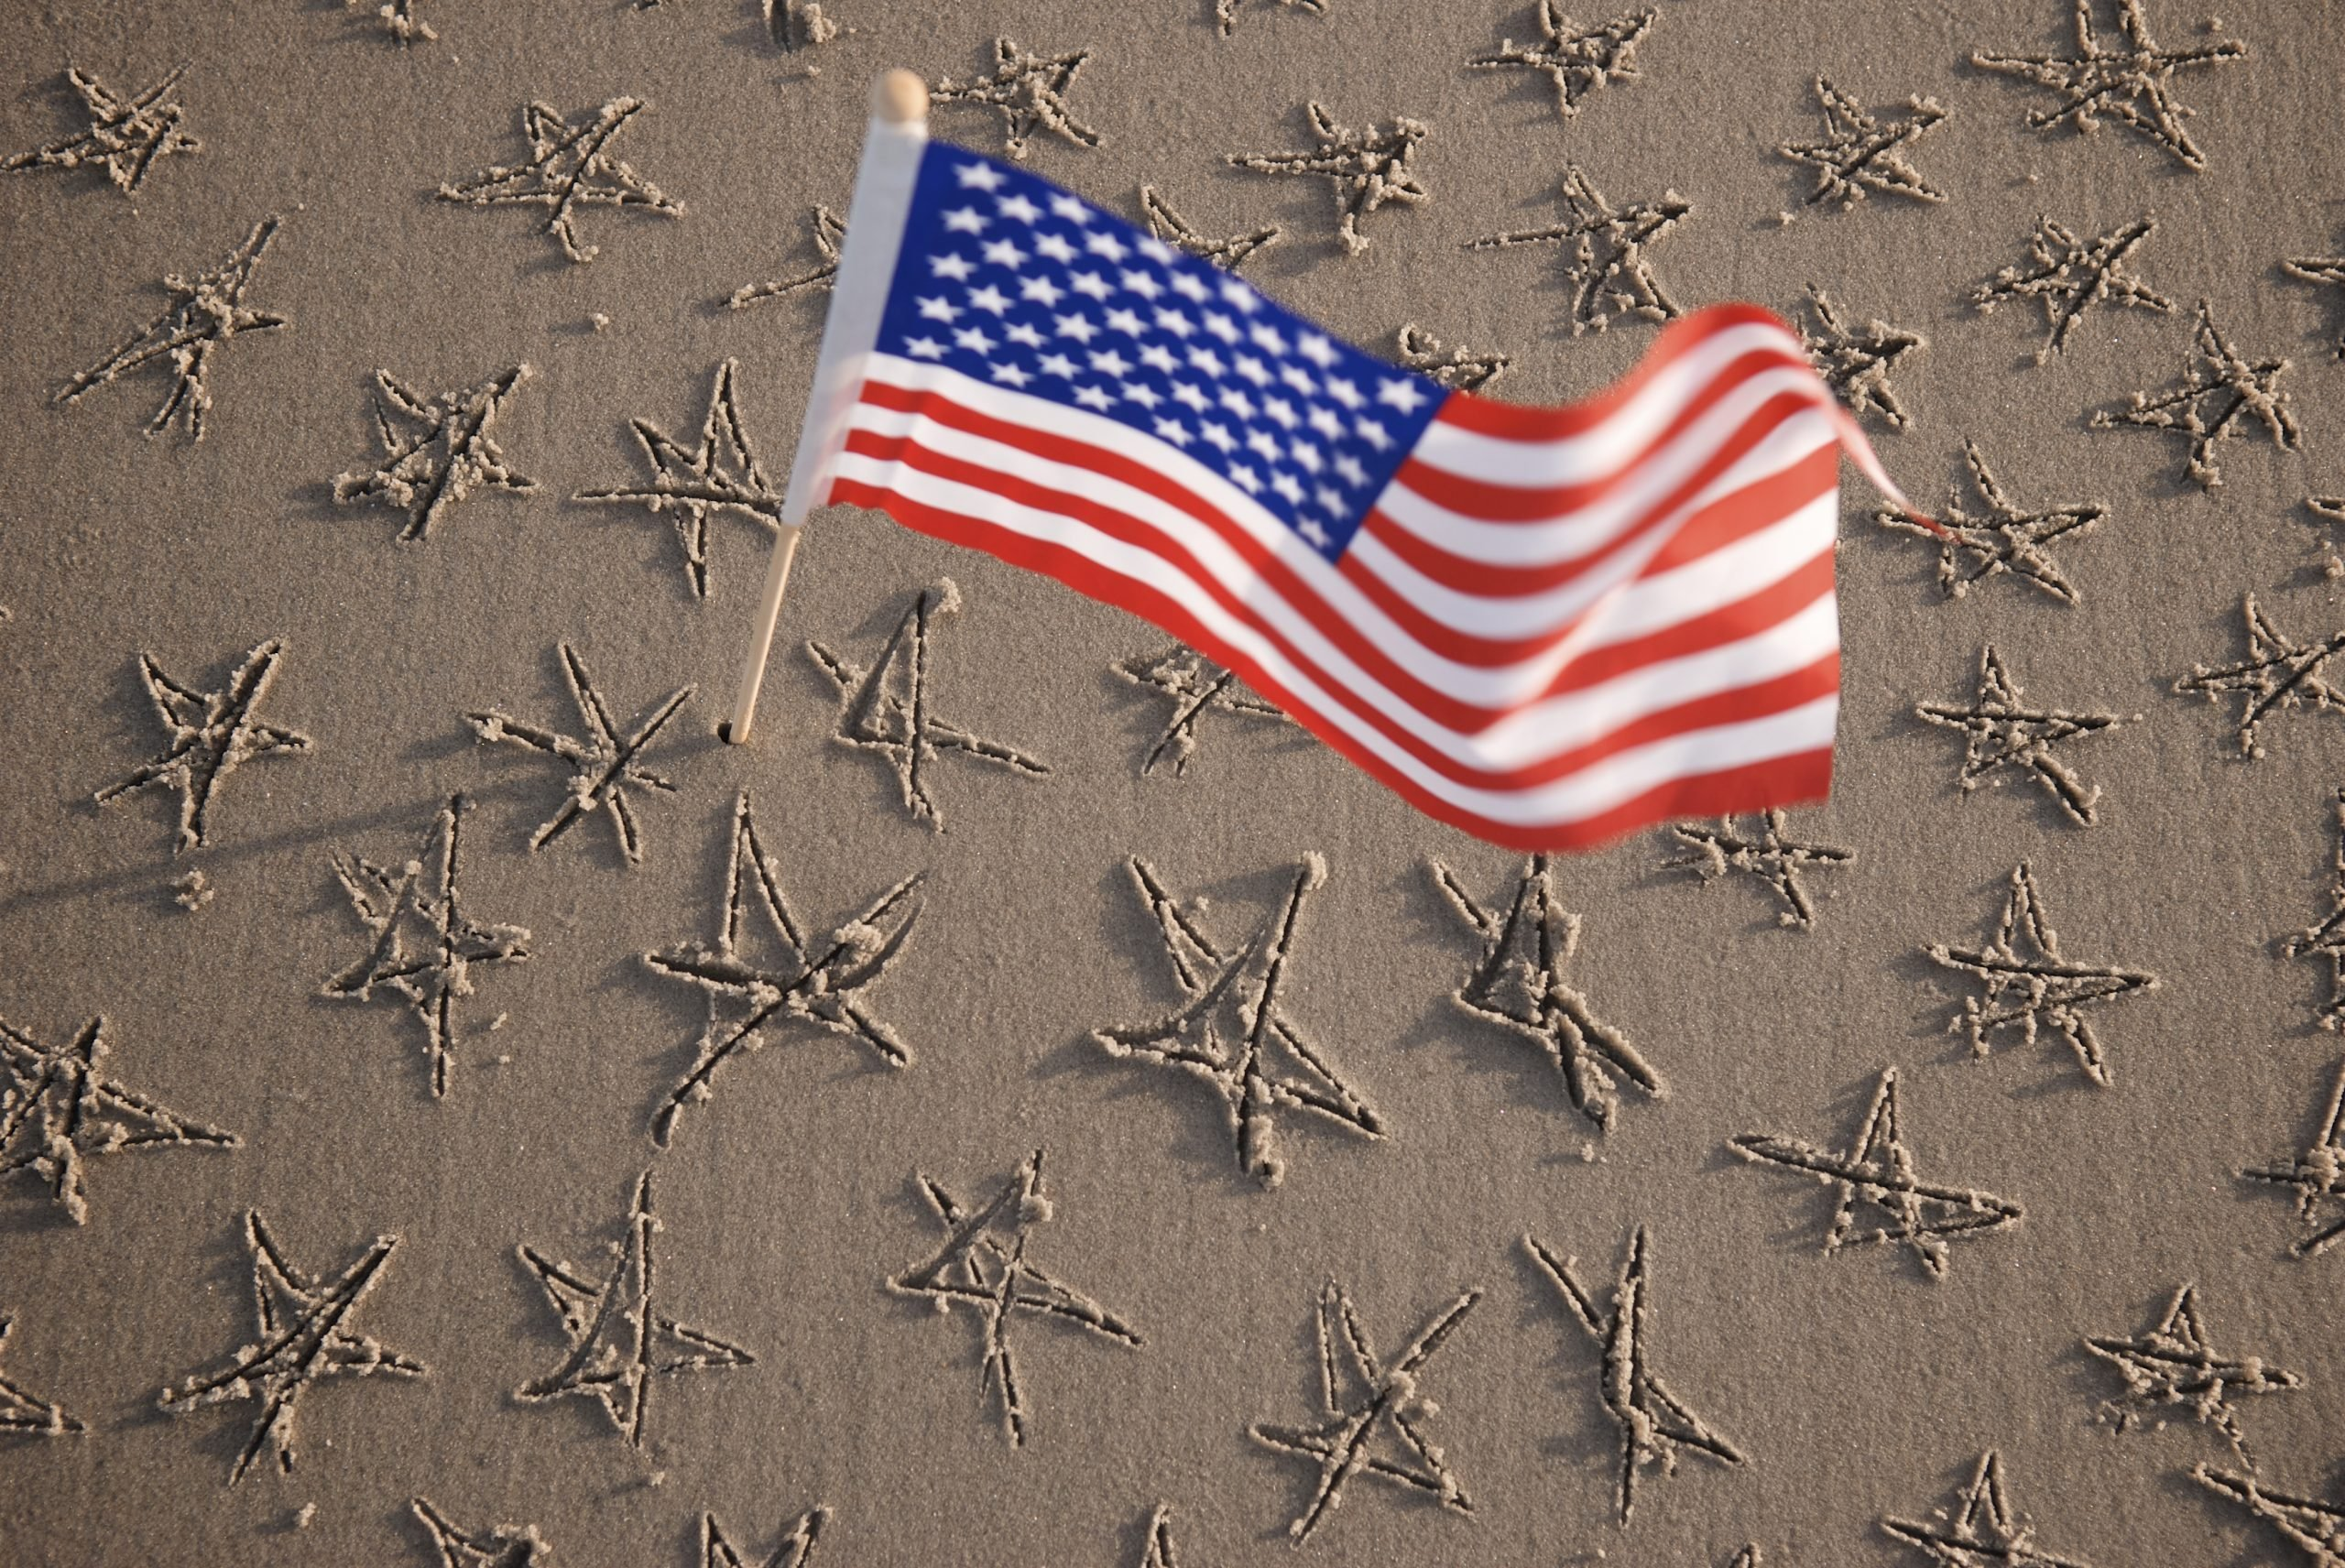 an American flag waves above a stretch of sand with hand-drawn stars